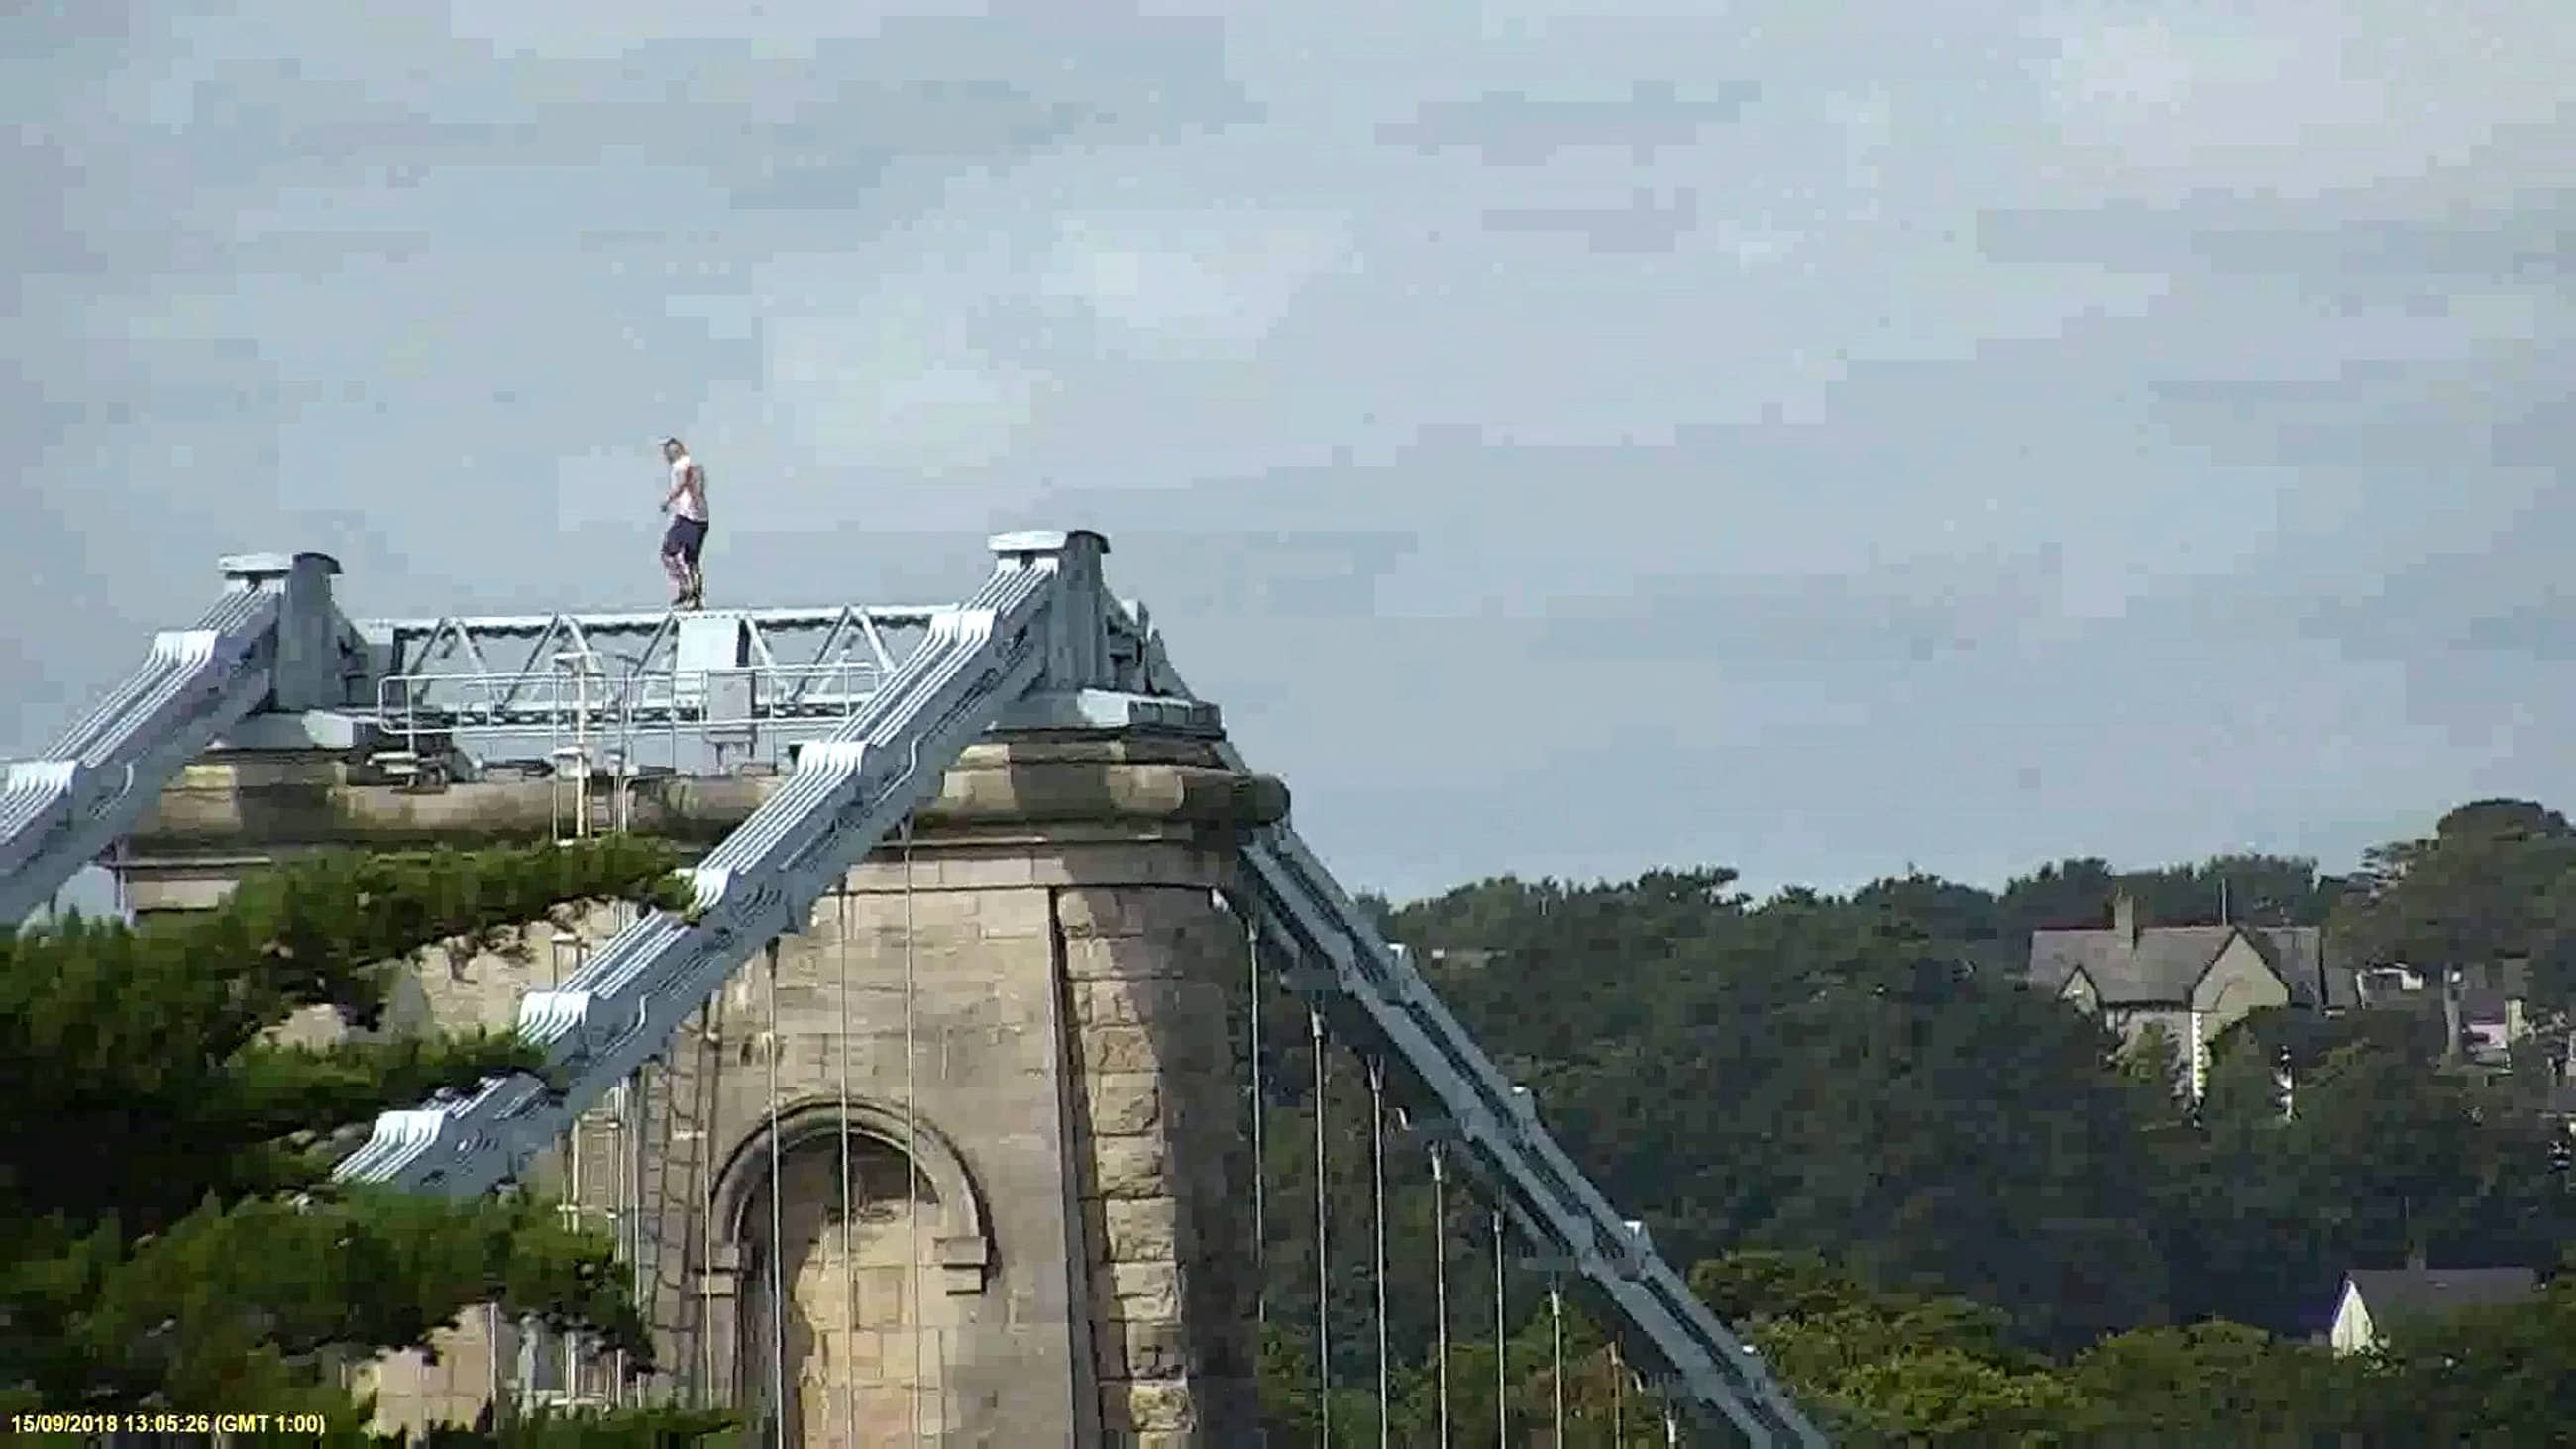 The man remained at the top of the bridge for an hour (SWNS)